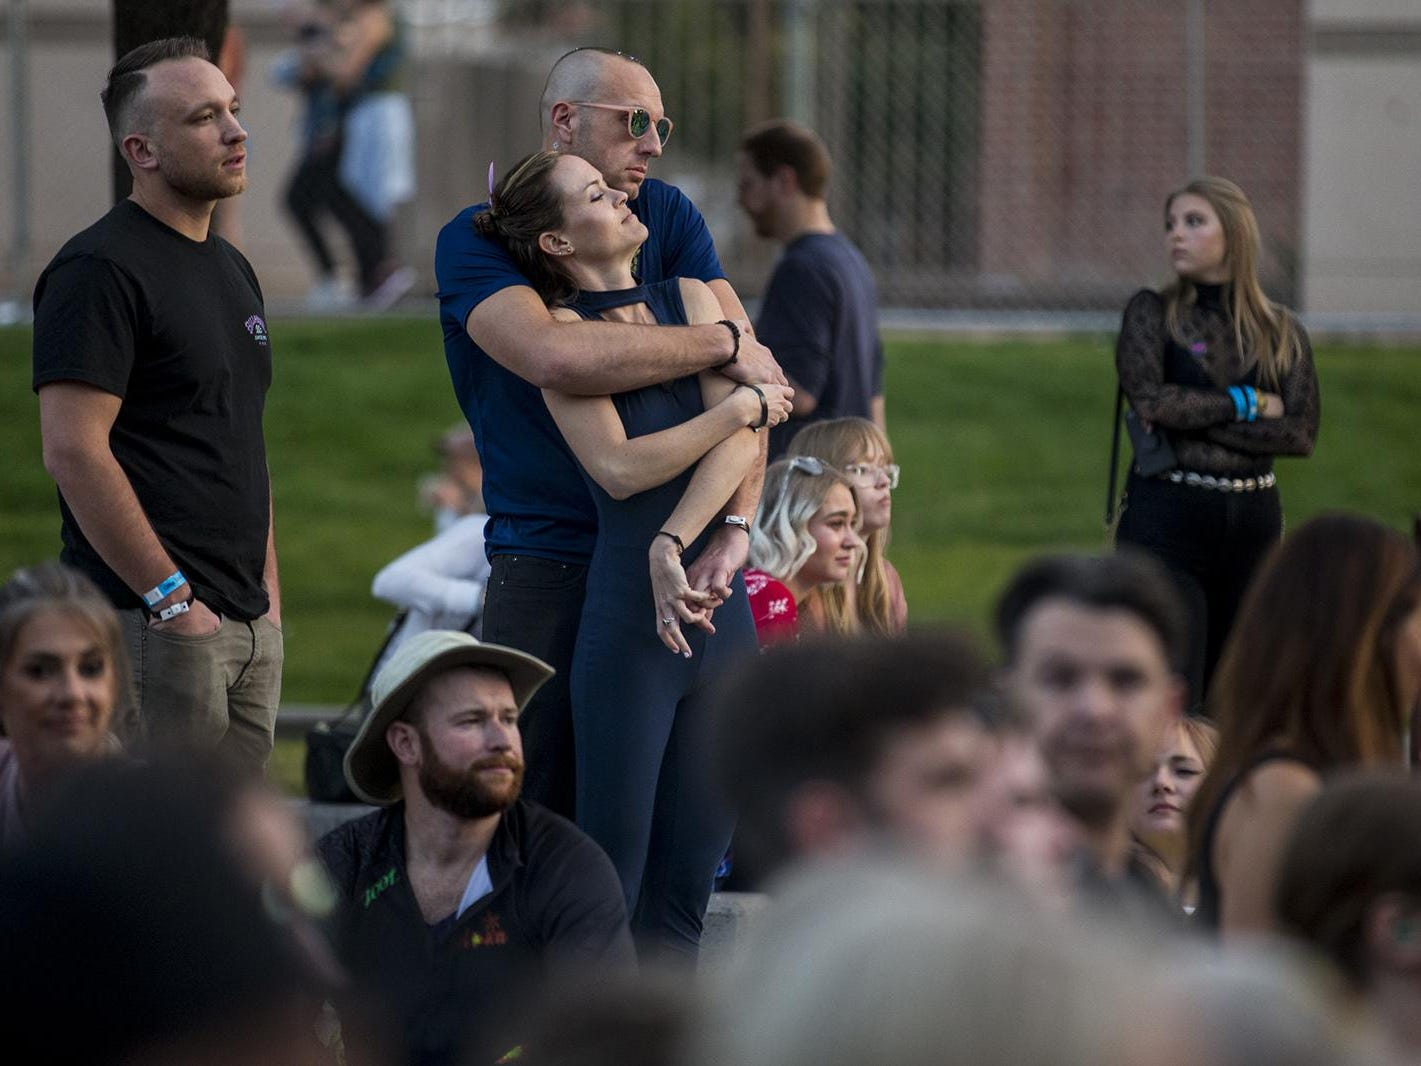 Fans listen to Mt. Joy perform during McDowell Mountain Music Festival on Friday, March 1, 2019, at Margaret T. Hance Park in Phoenix.